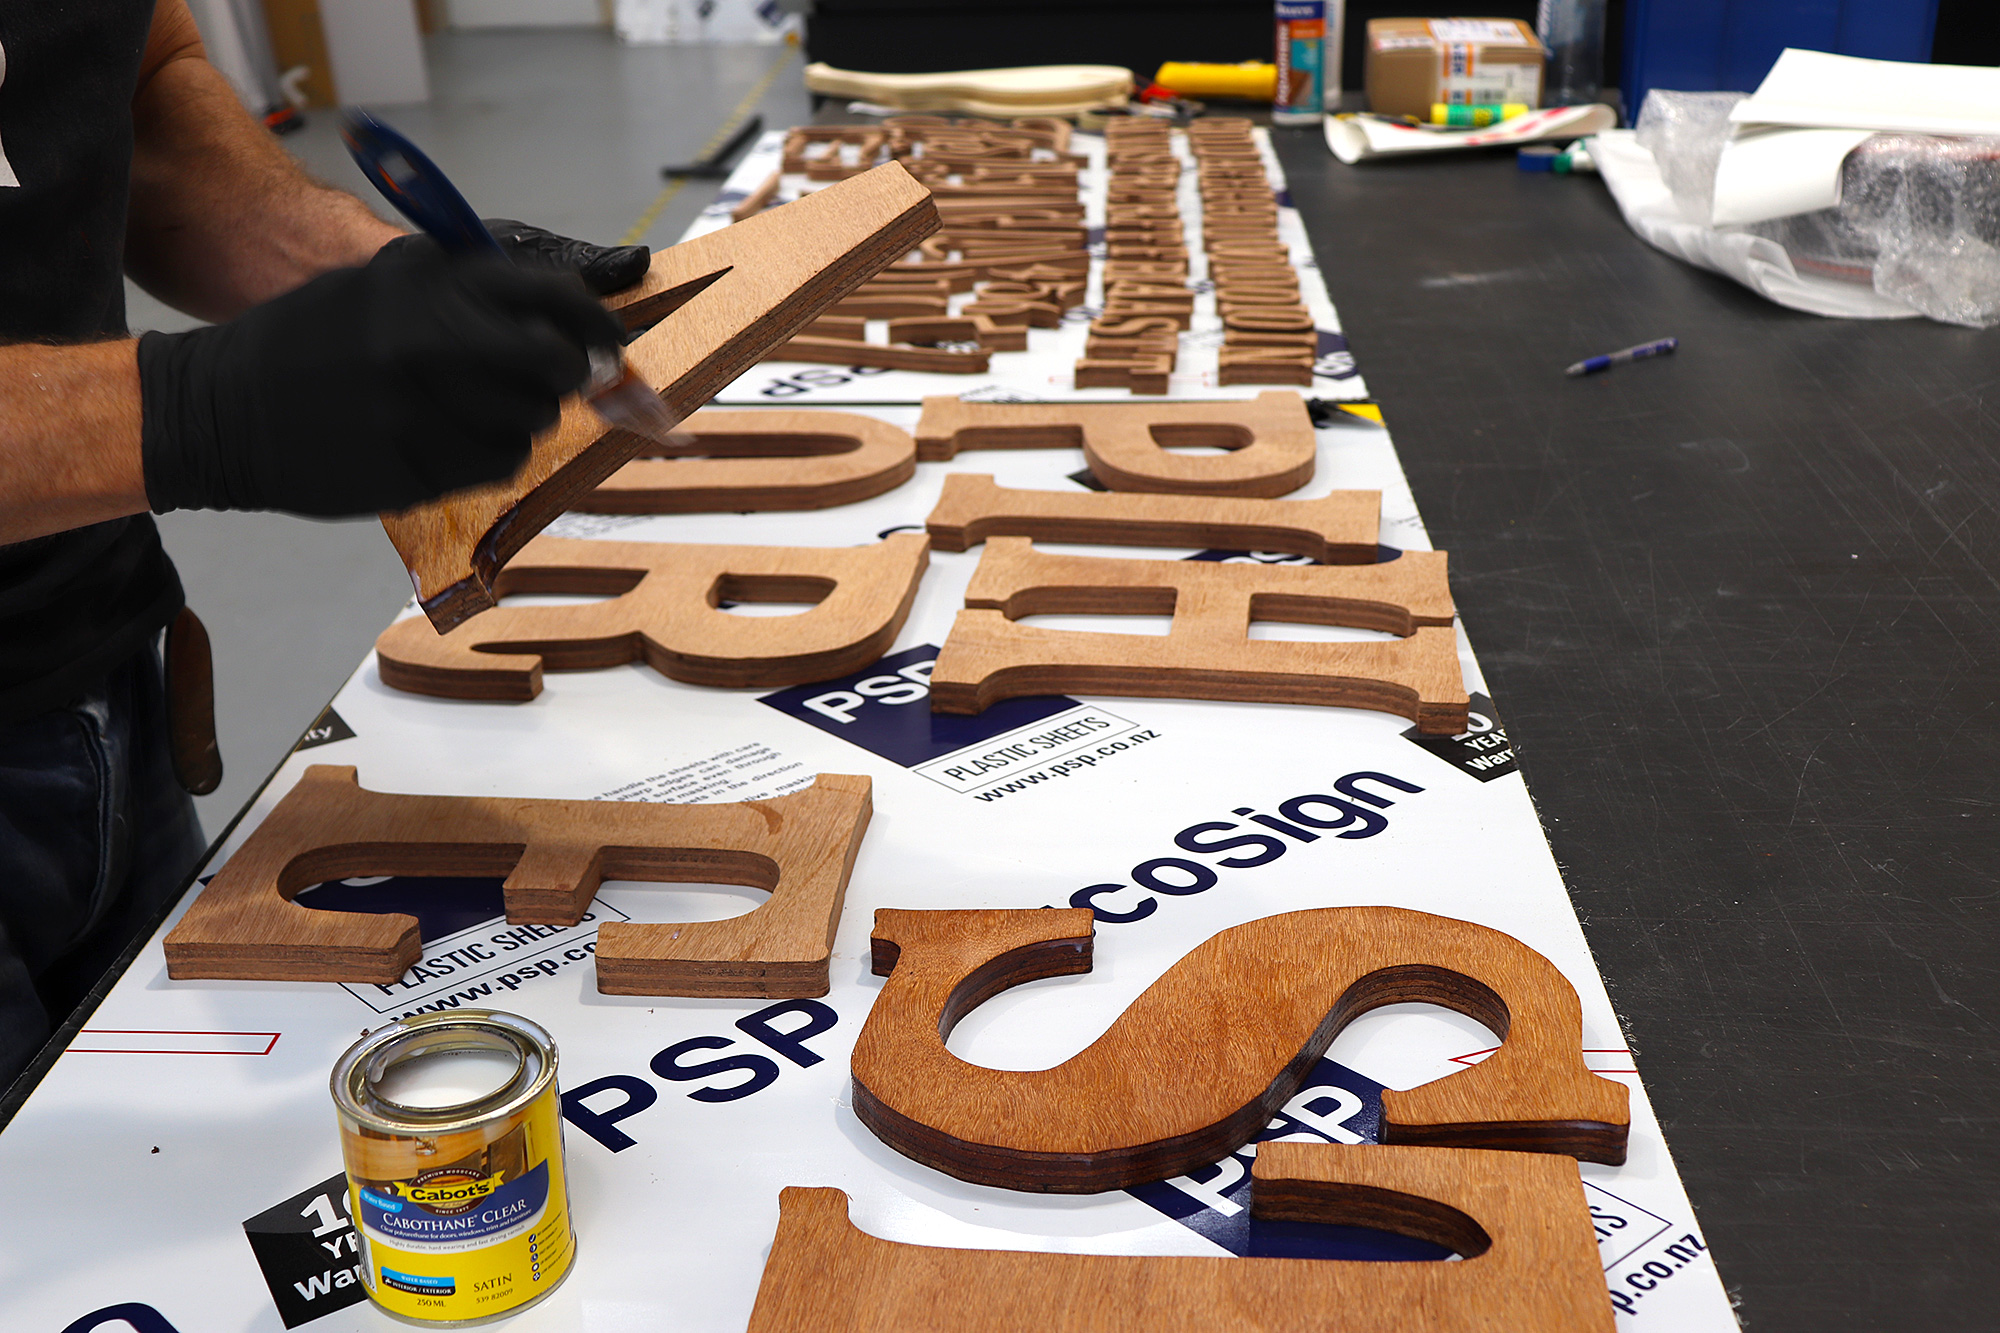 Piha store plywood 3d lettering preparation